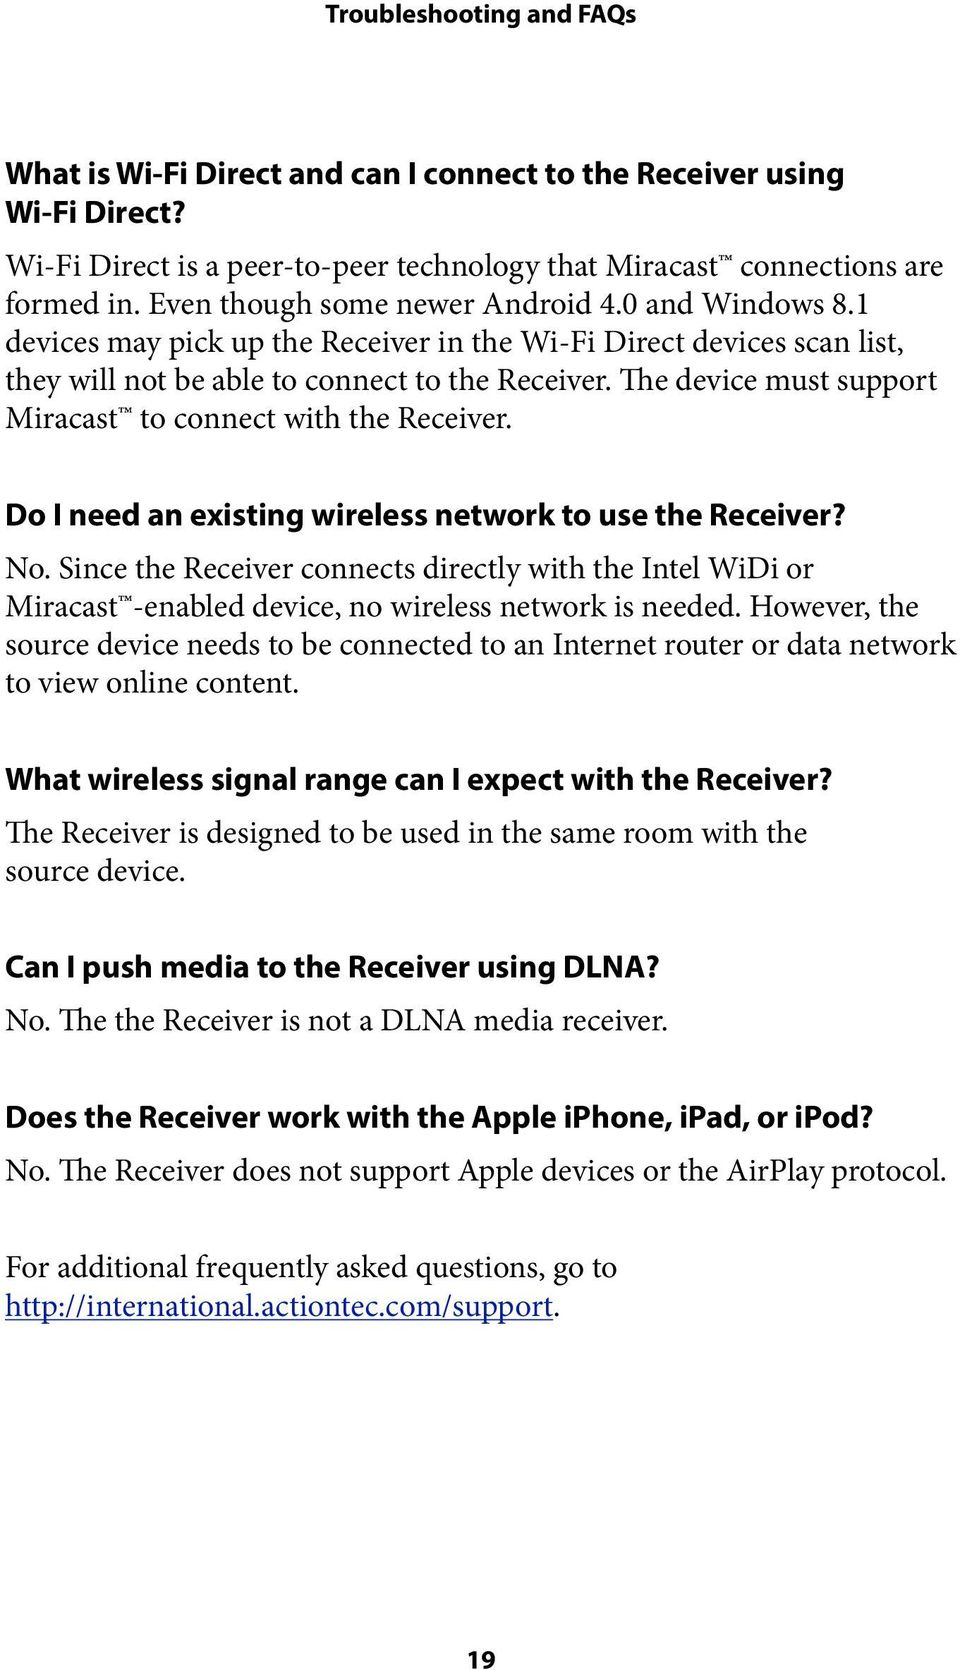 The device must support Miracast to connect with the Receiver. Do I need an existing wireless network to use the Receiver? No.